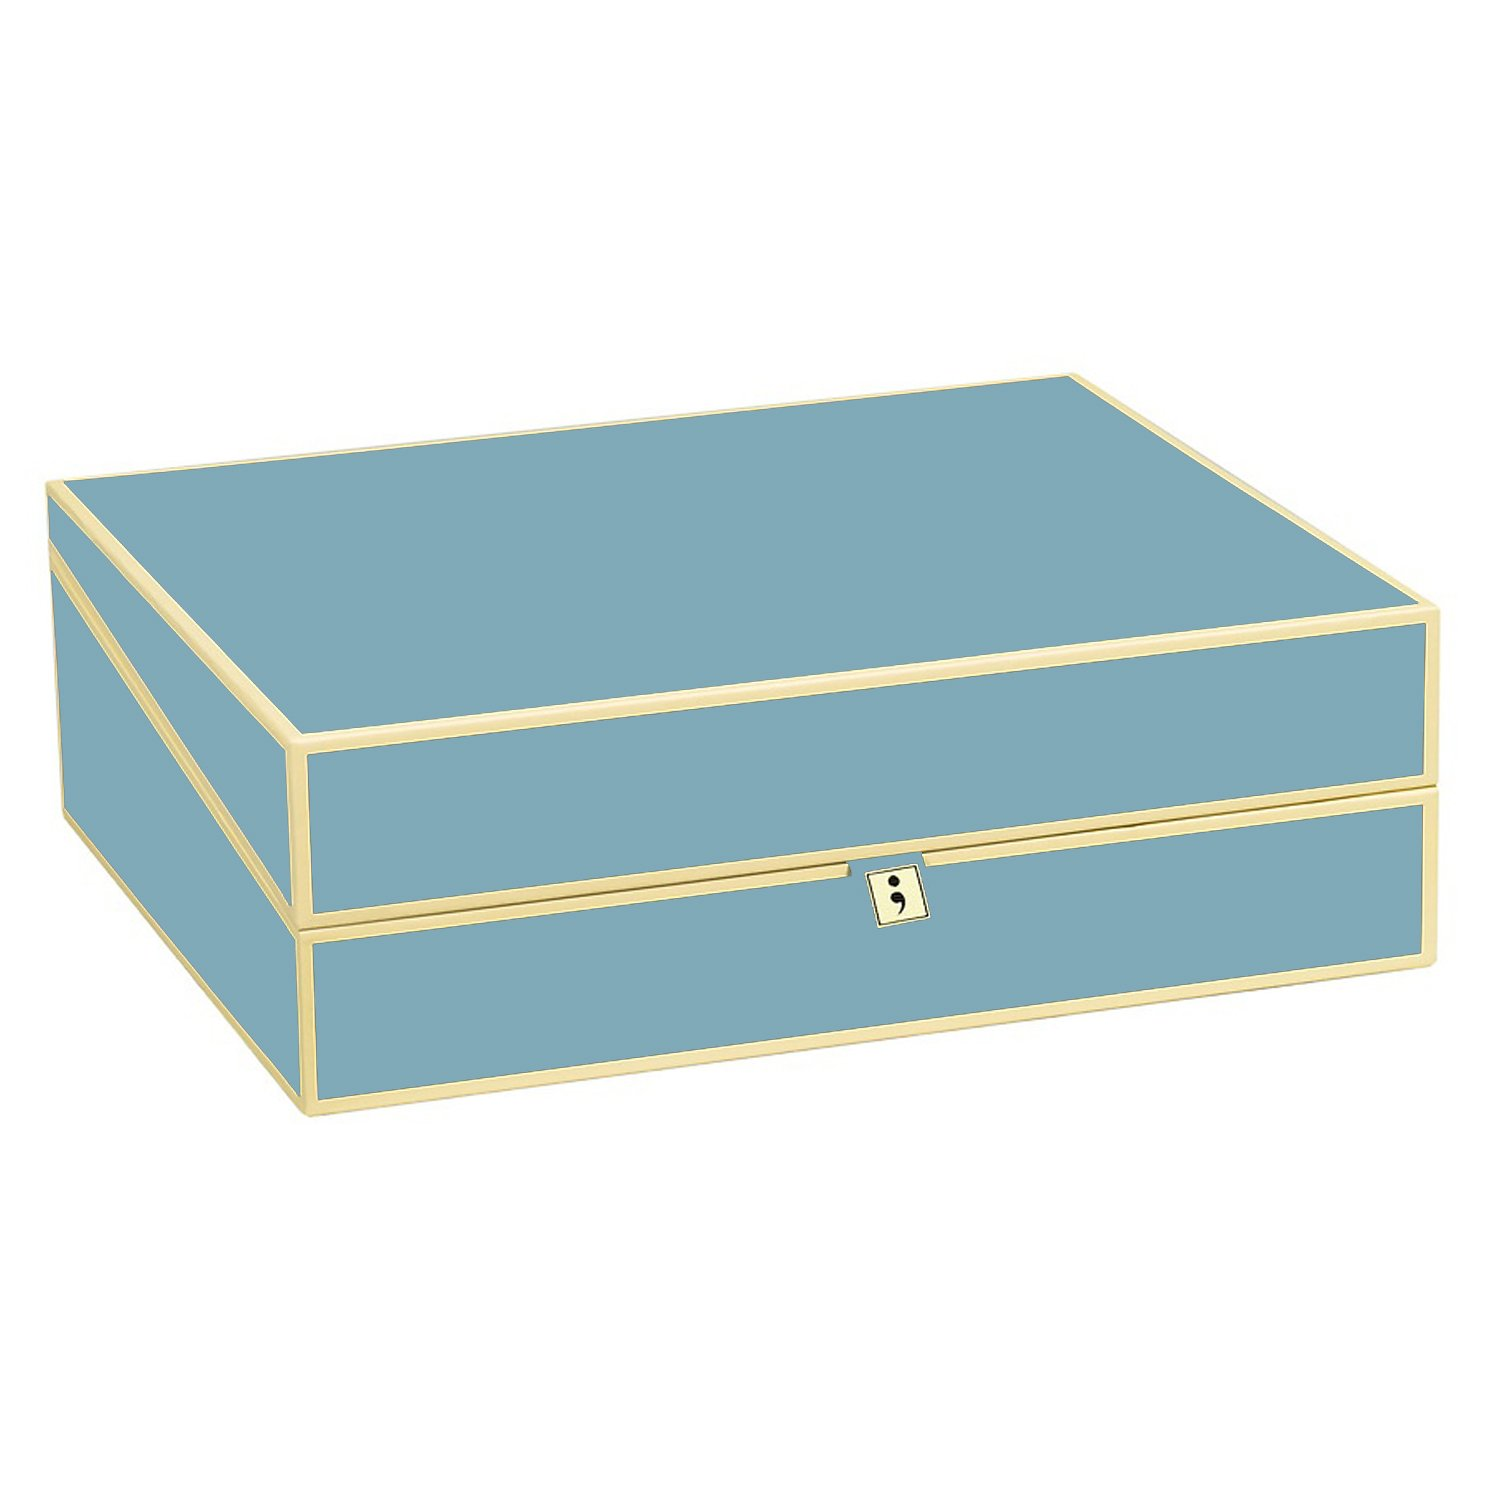 Semikolon Letter Size / A4 Size Document Storage Box, Ciel - Light Blue